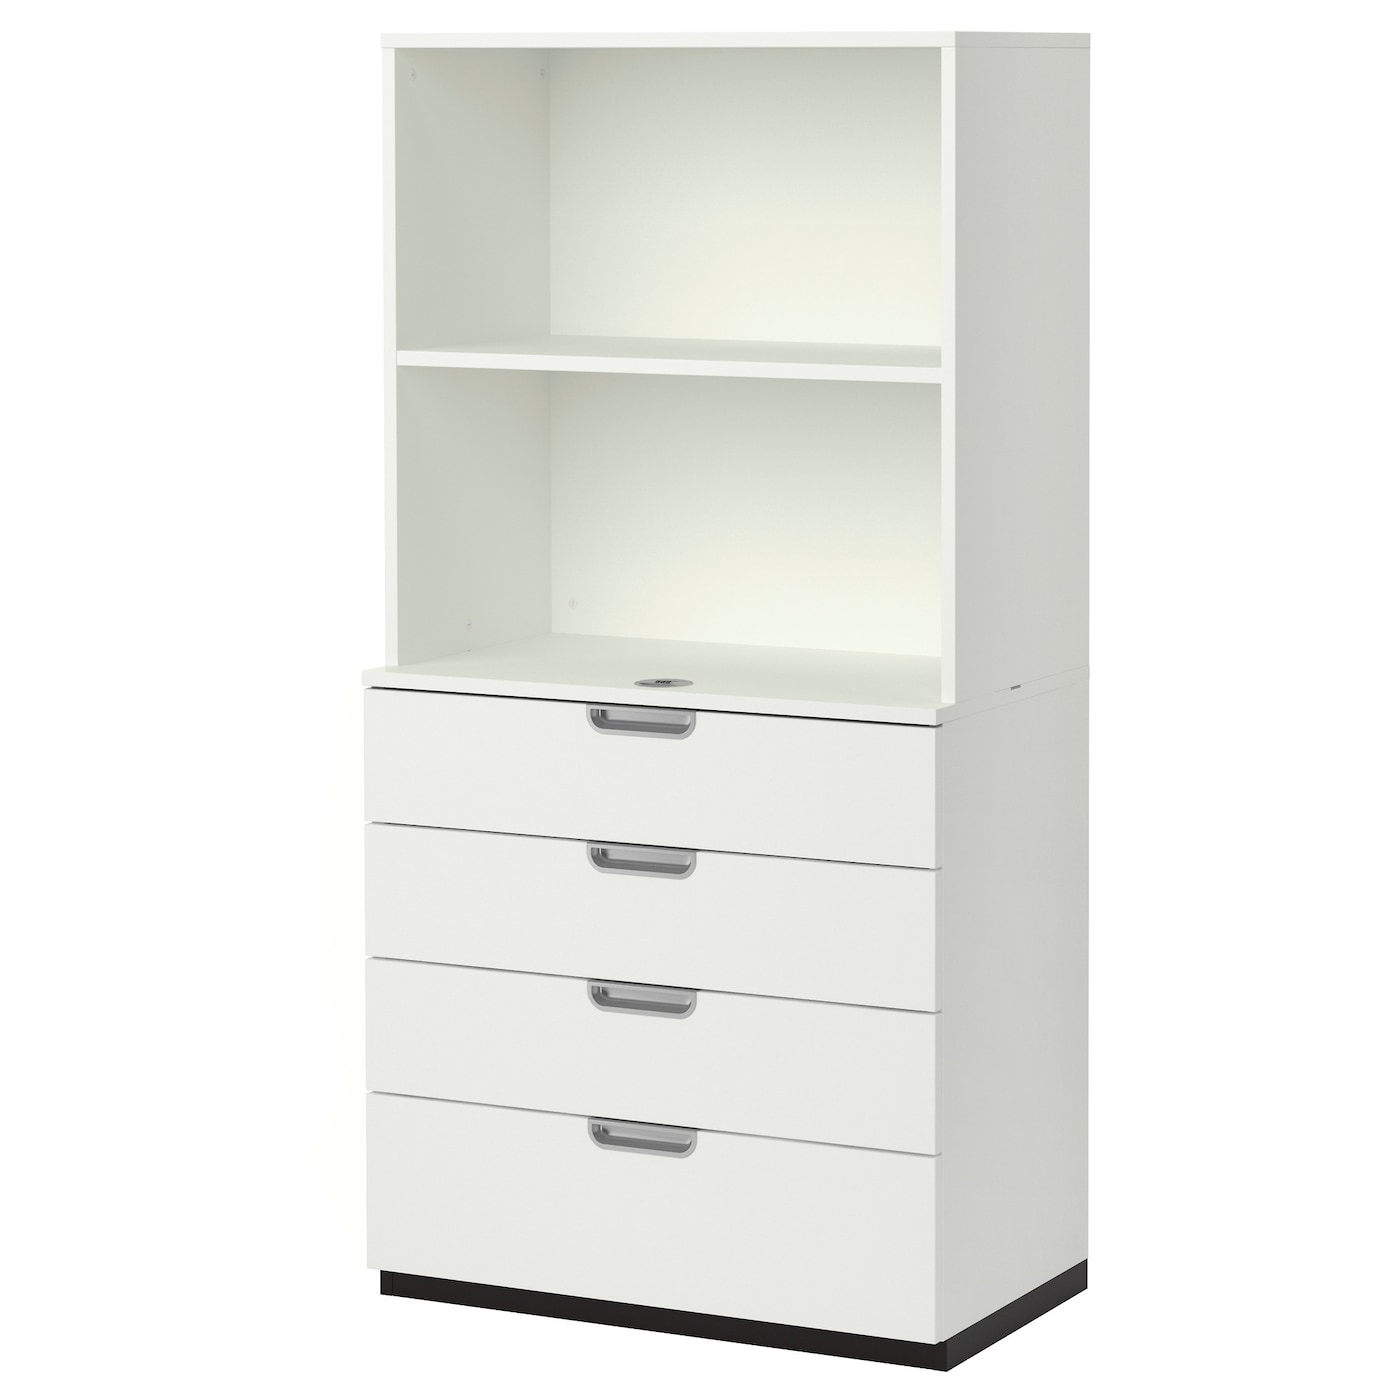 IKEA GALANT storage combination with drawers